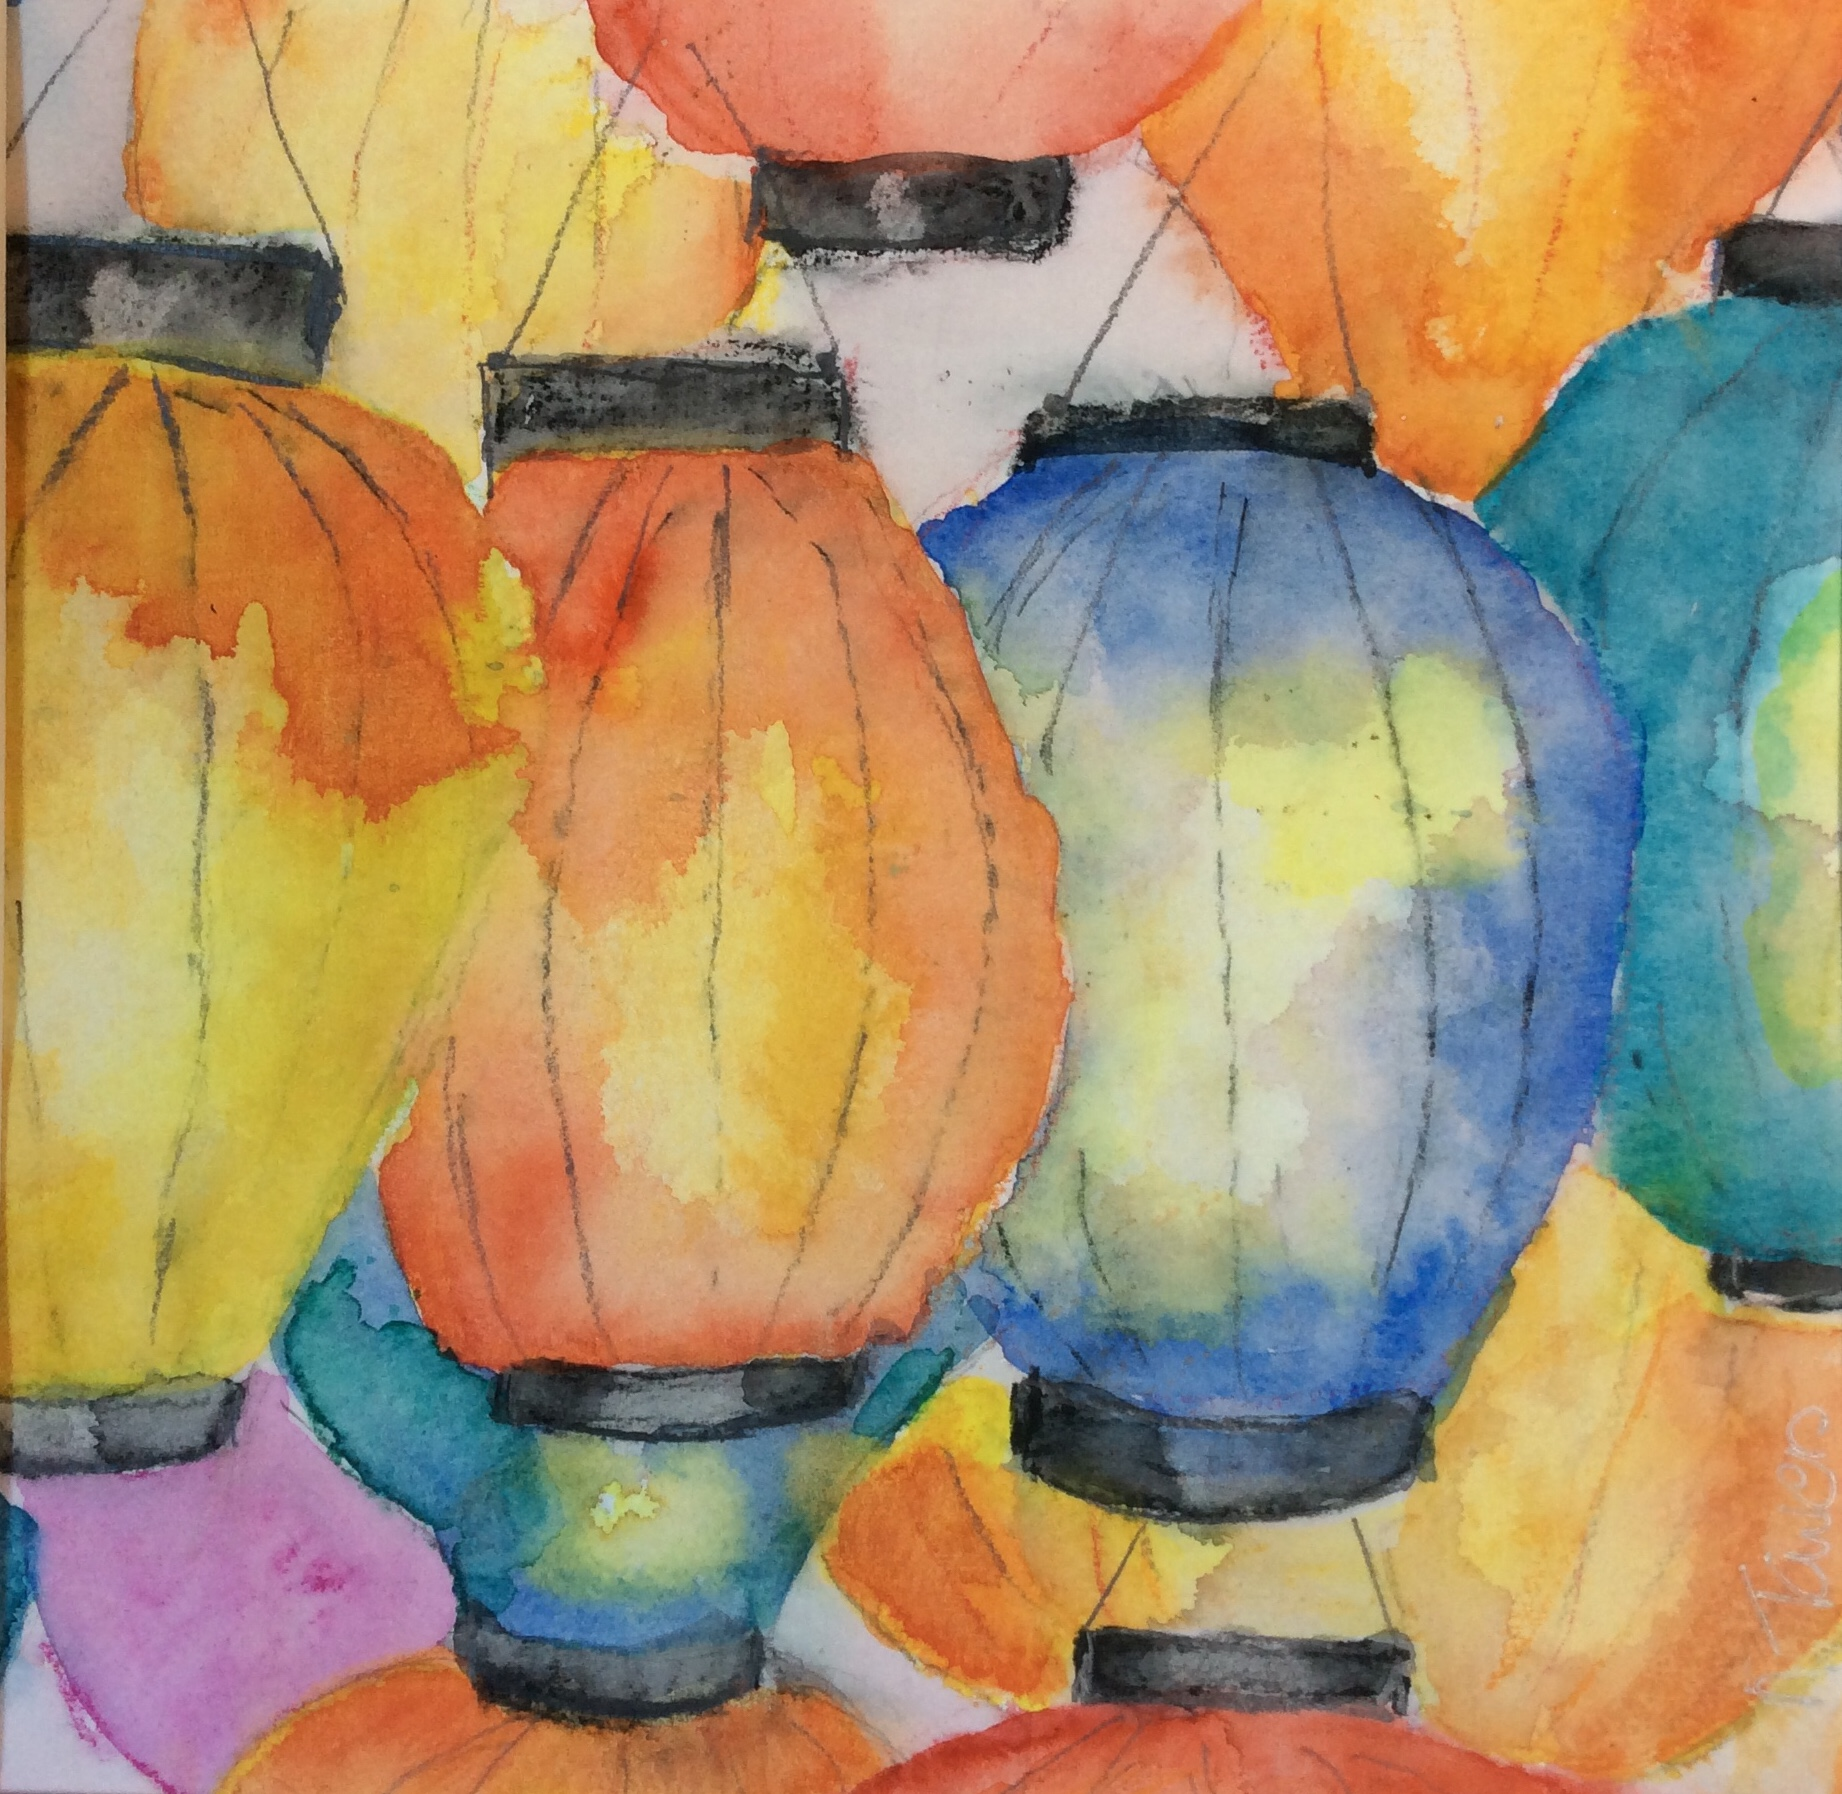 Chinese Lanterns by Norrie Towers